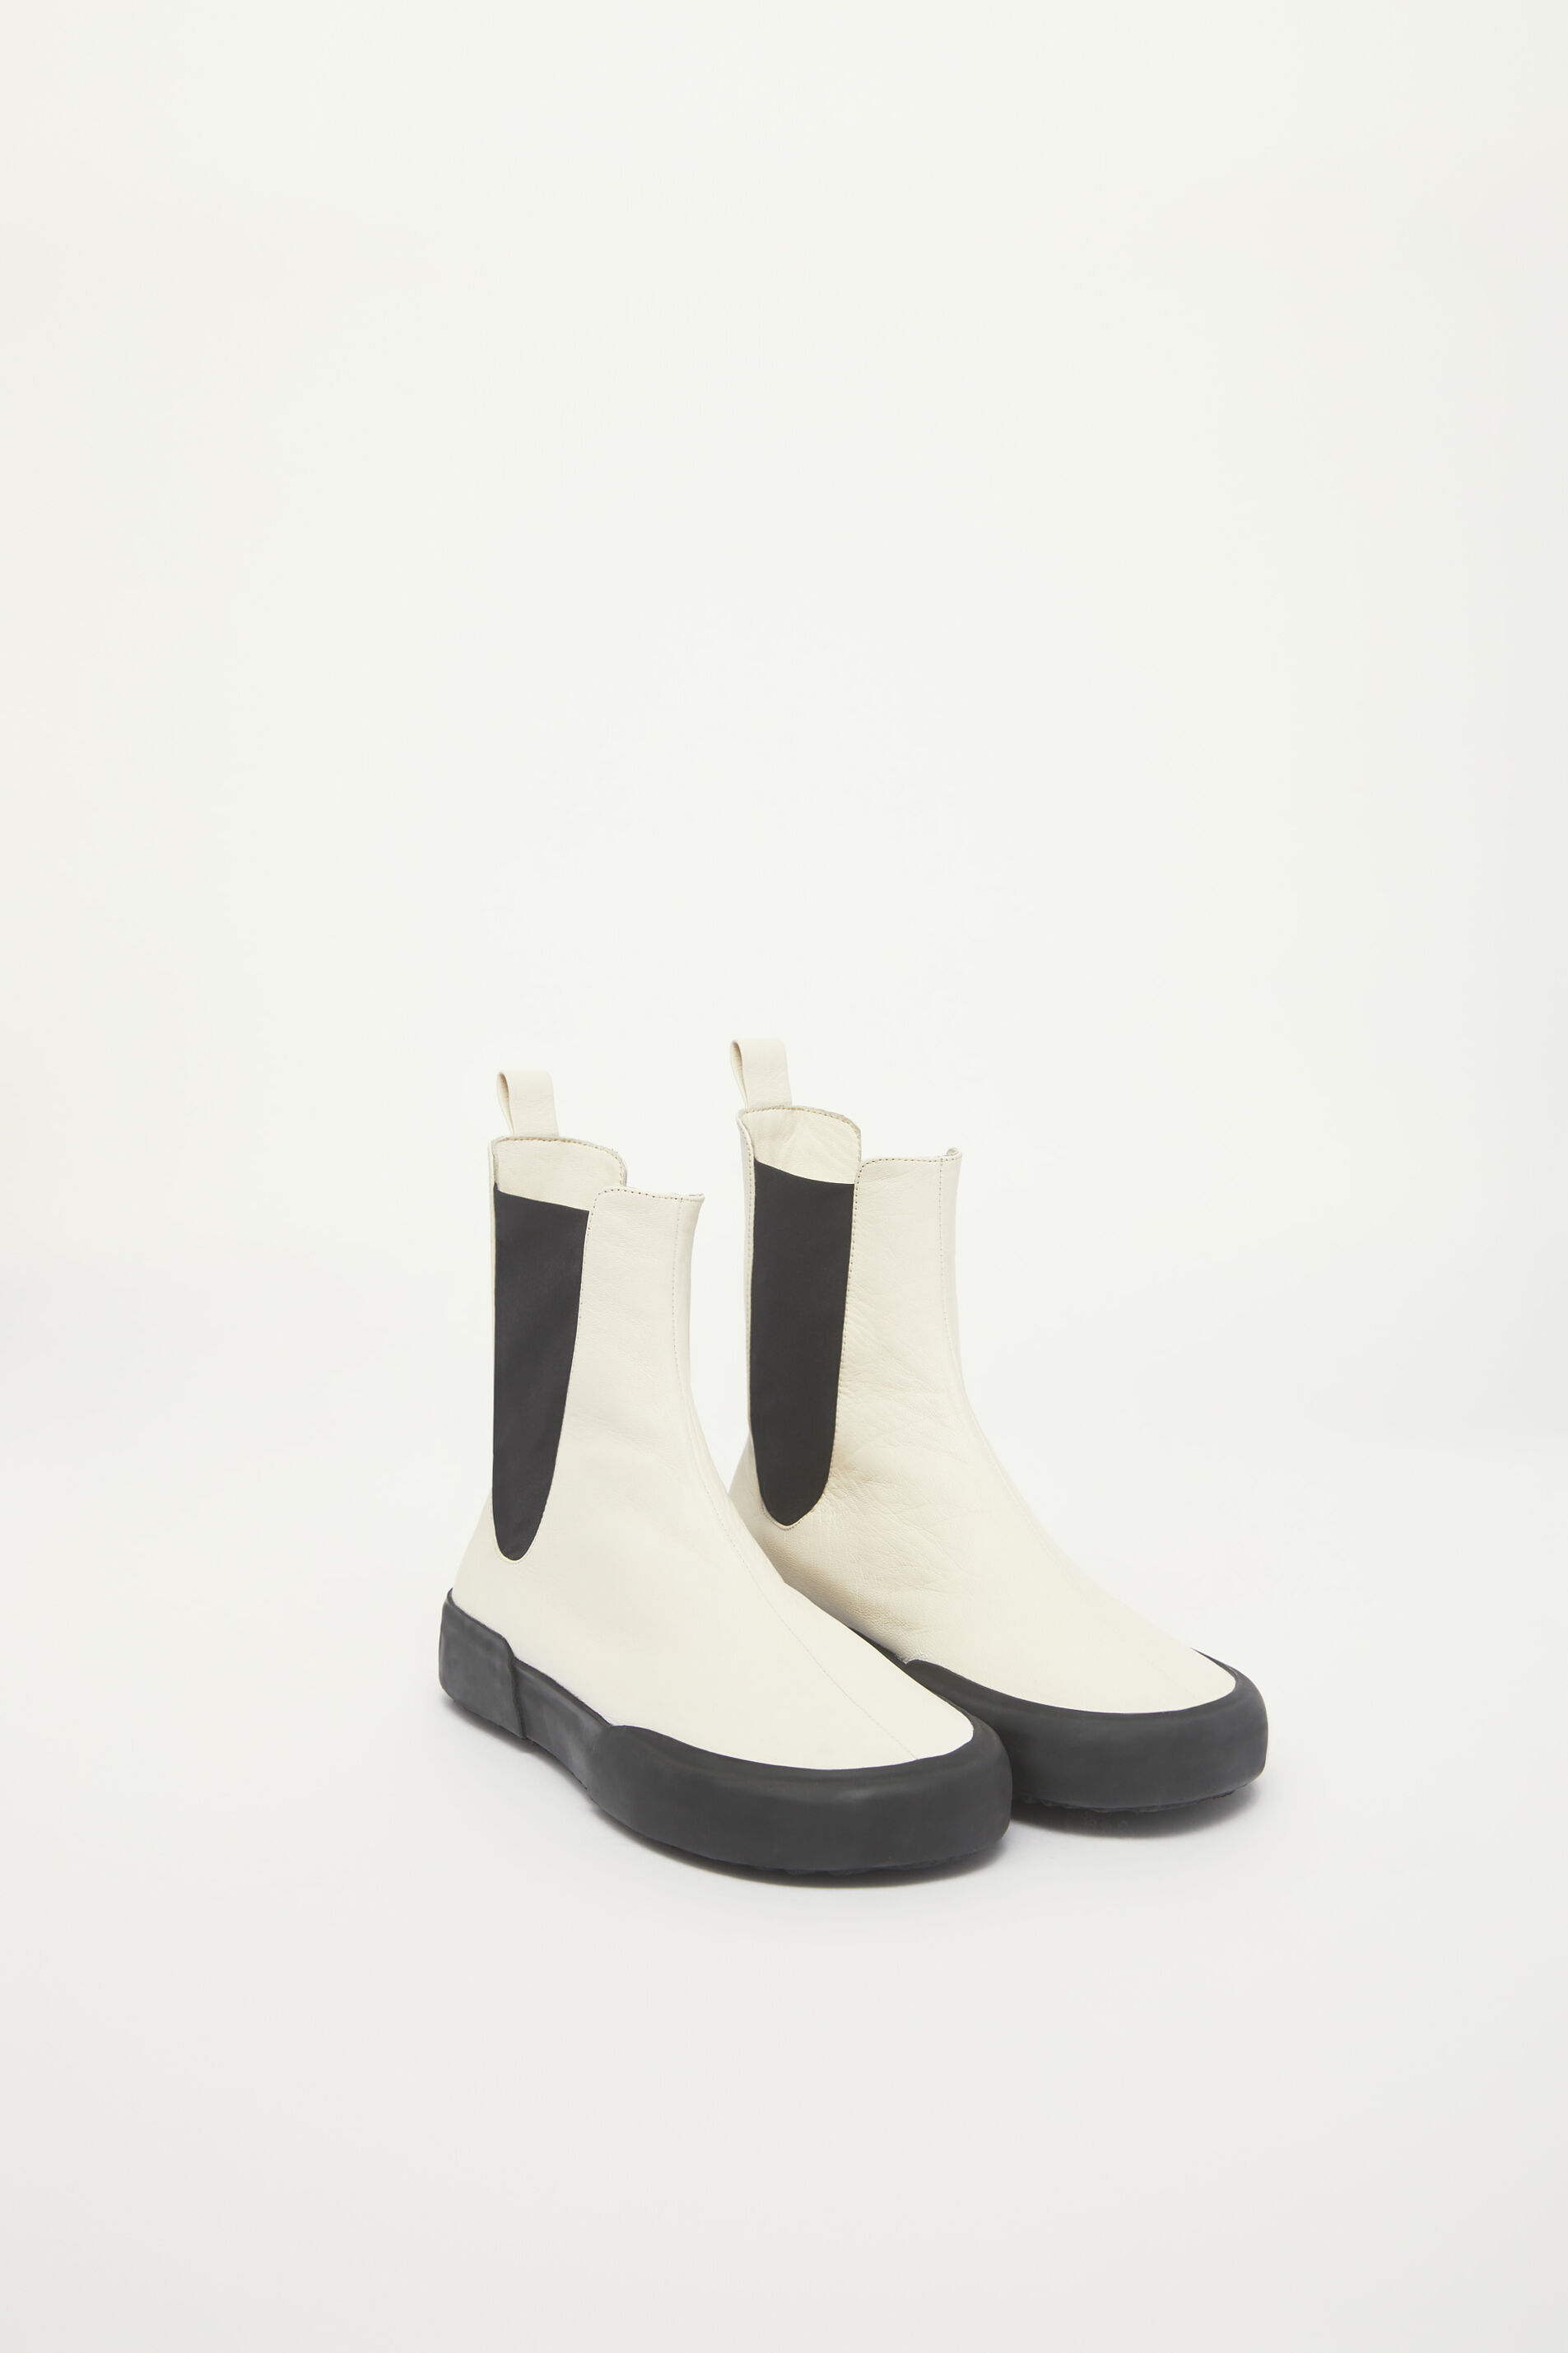 Sneaker Boots, natural, large